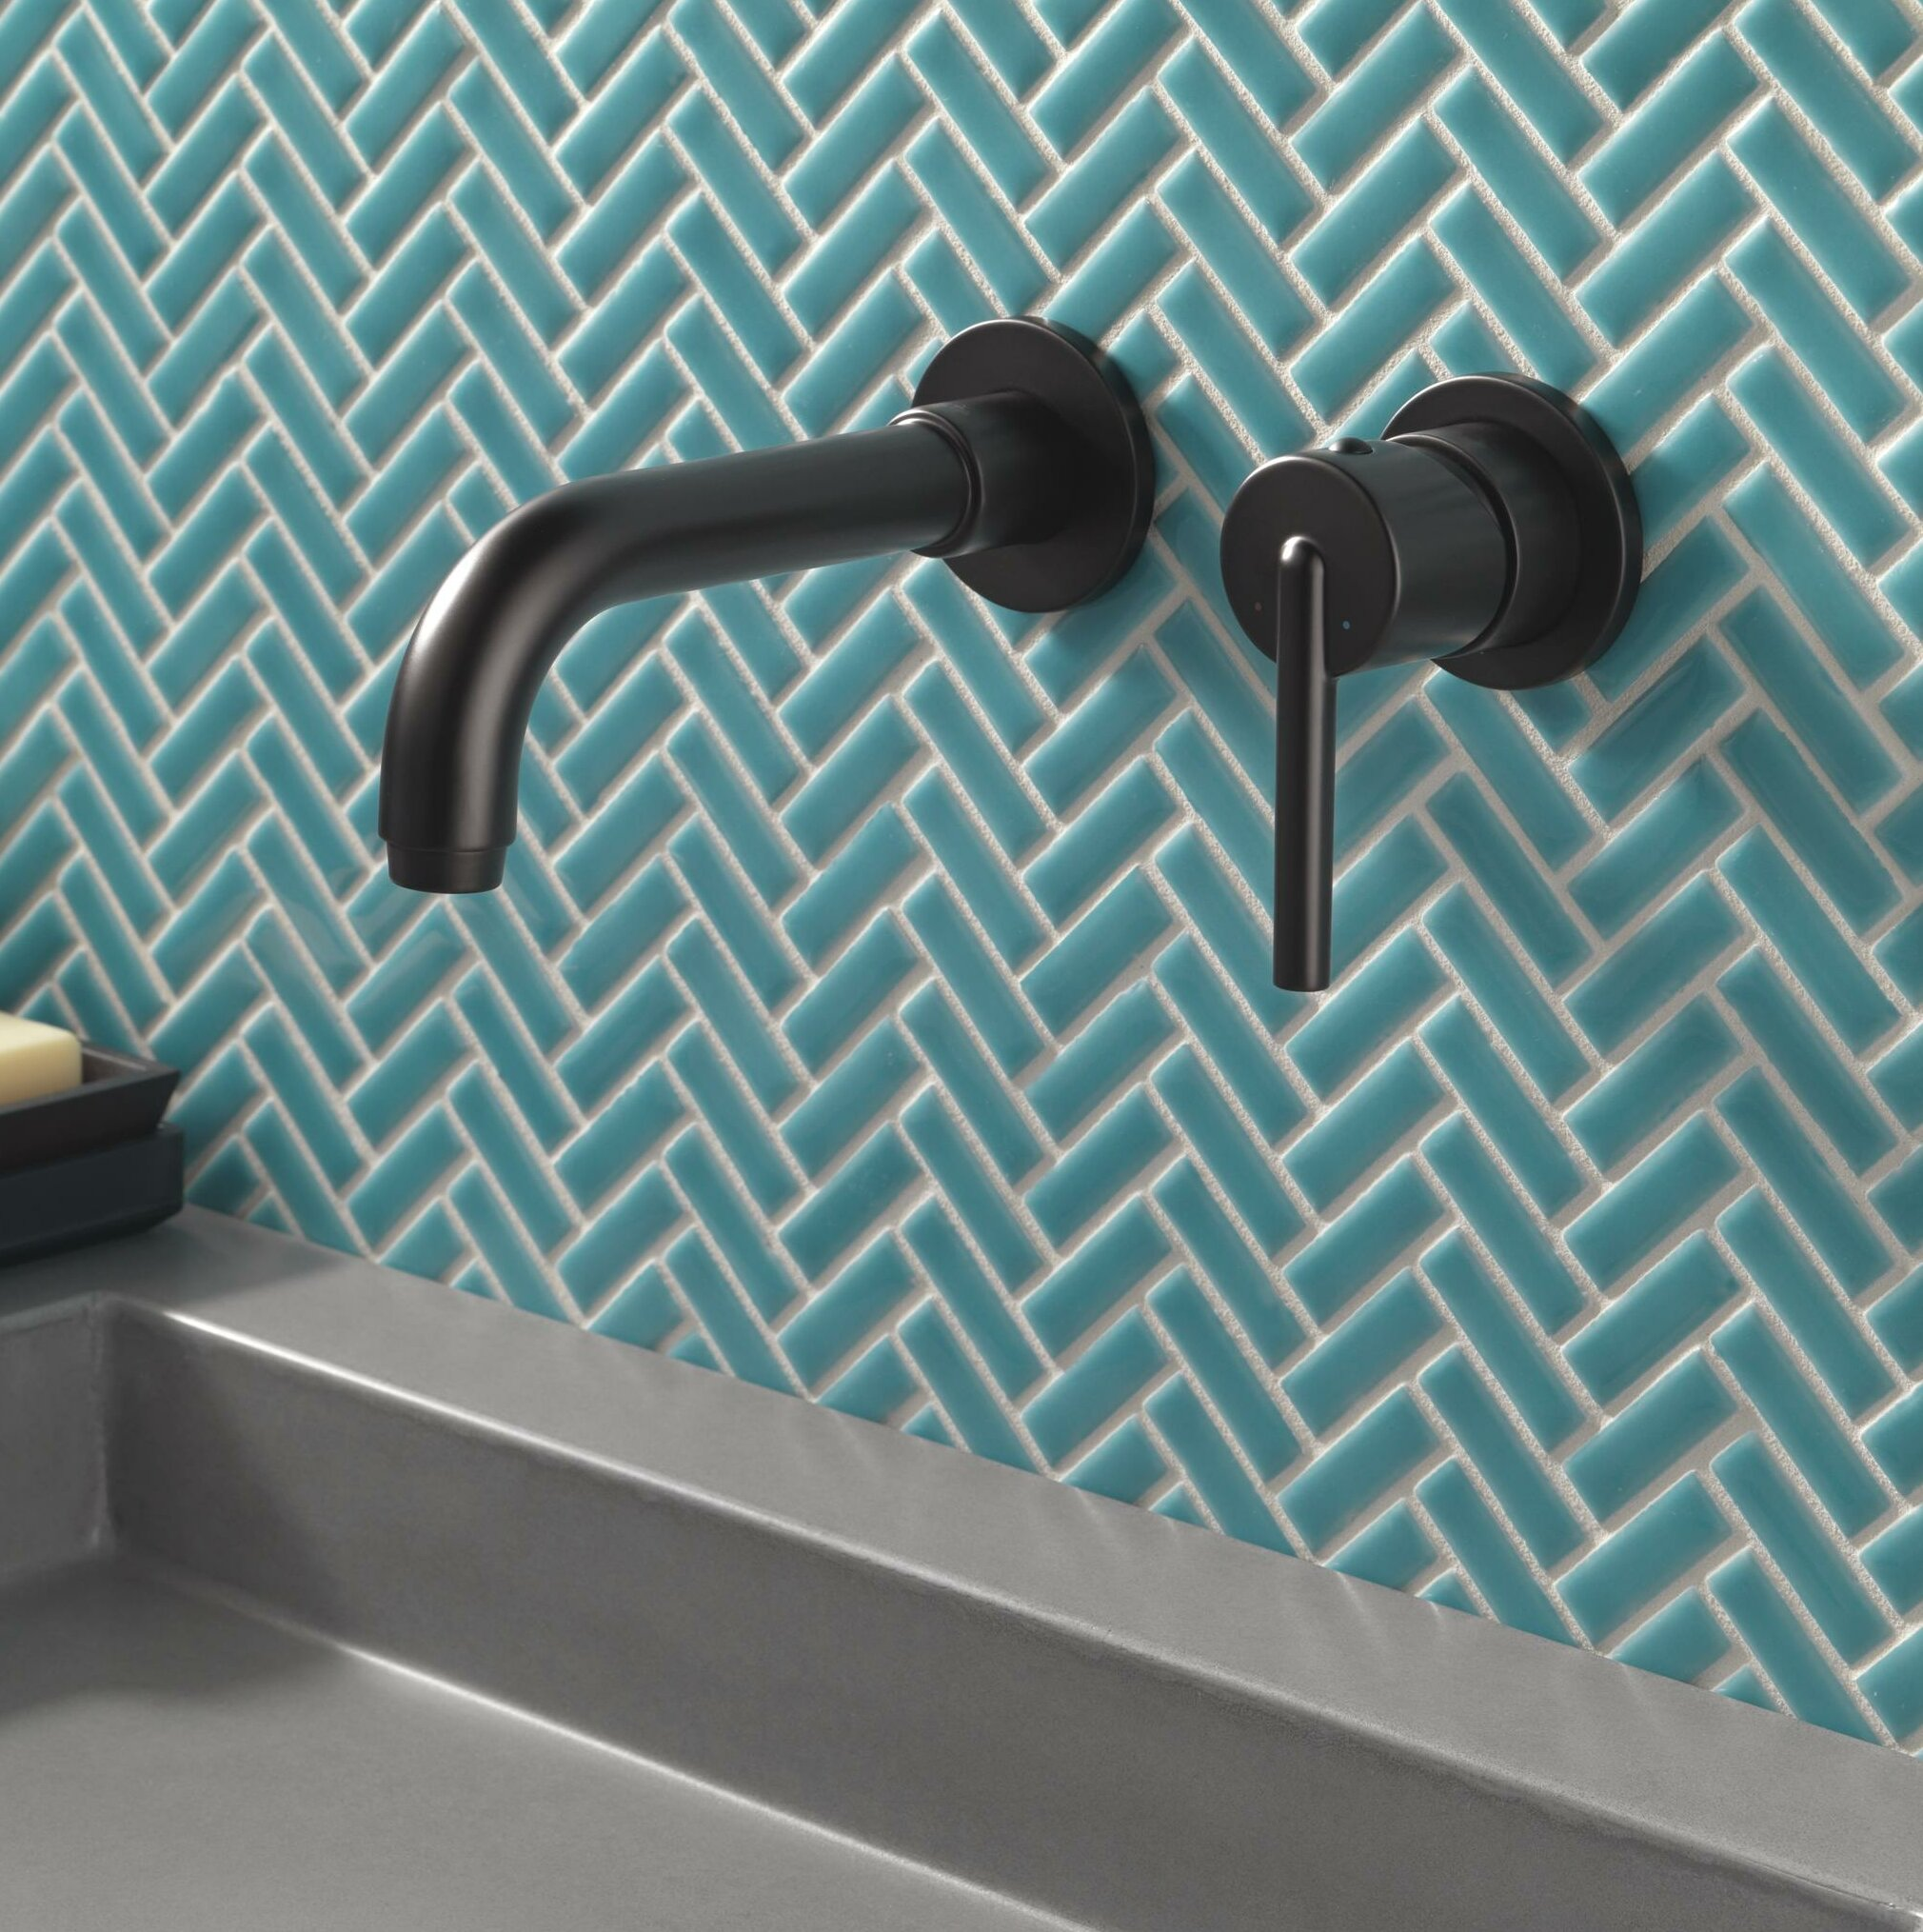 Picture of: T3559lf Wl Czwl Blwl Delta Trinsic Wall Mounted Bathroom Faucet Reviews Wayfair